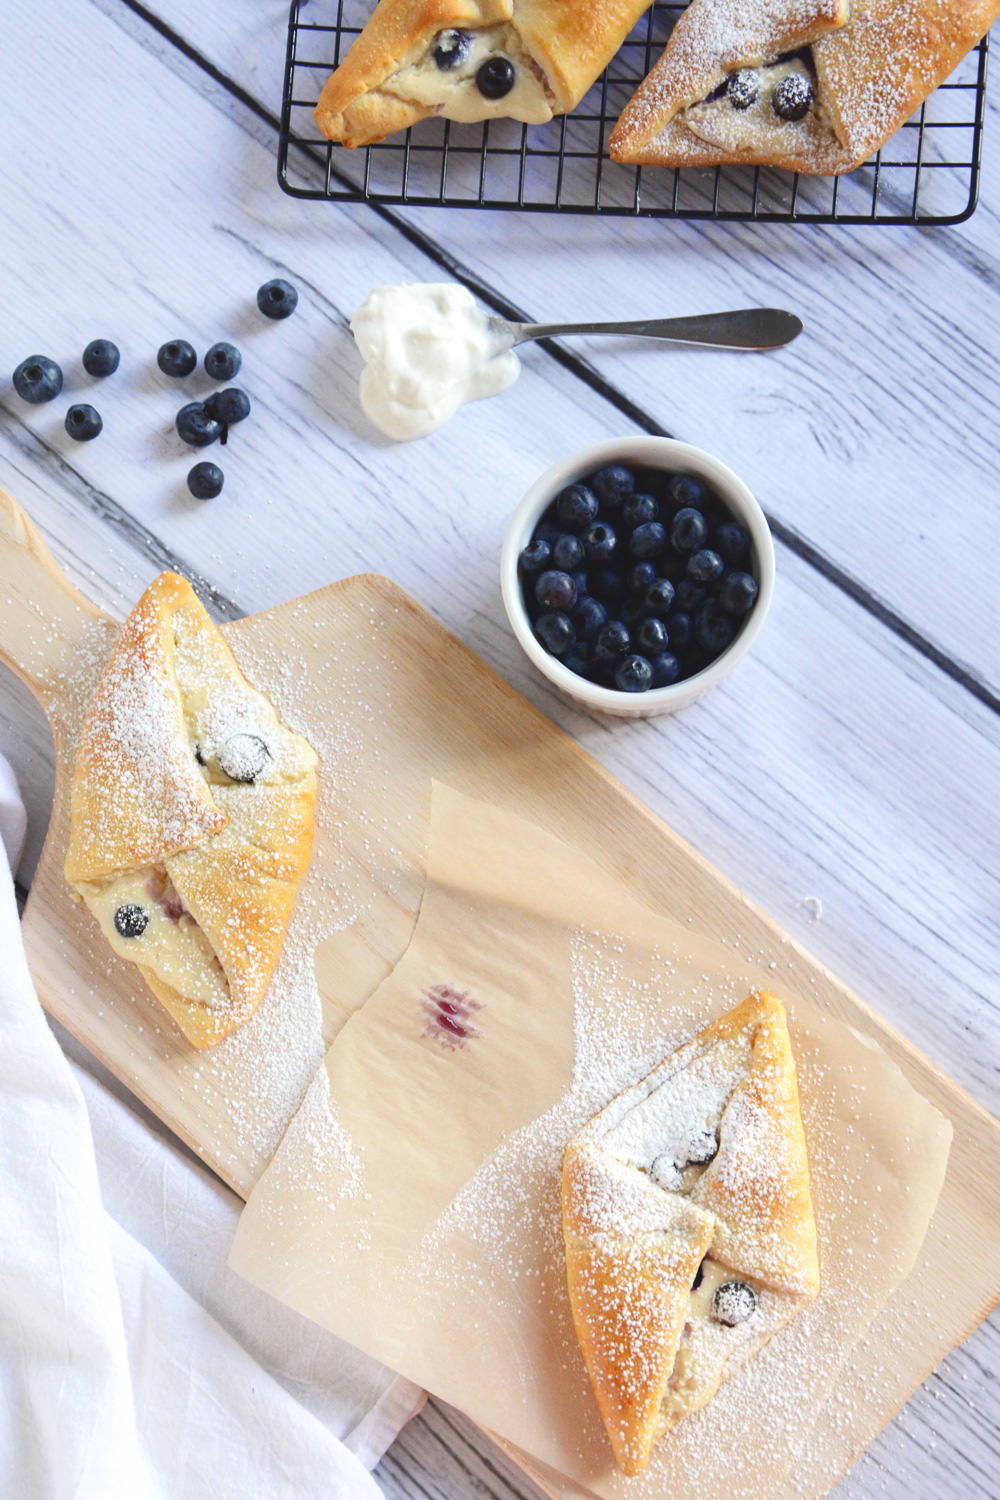 Buttery and flakey croissants filled with whipped honey cream cheese and tart blueberries are the perfect breakfast!